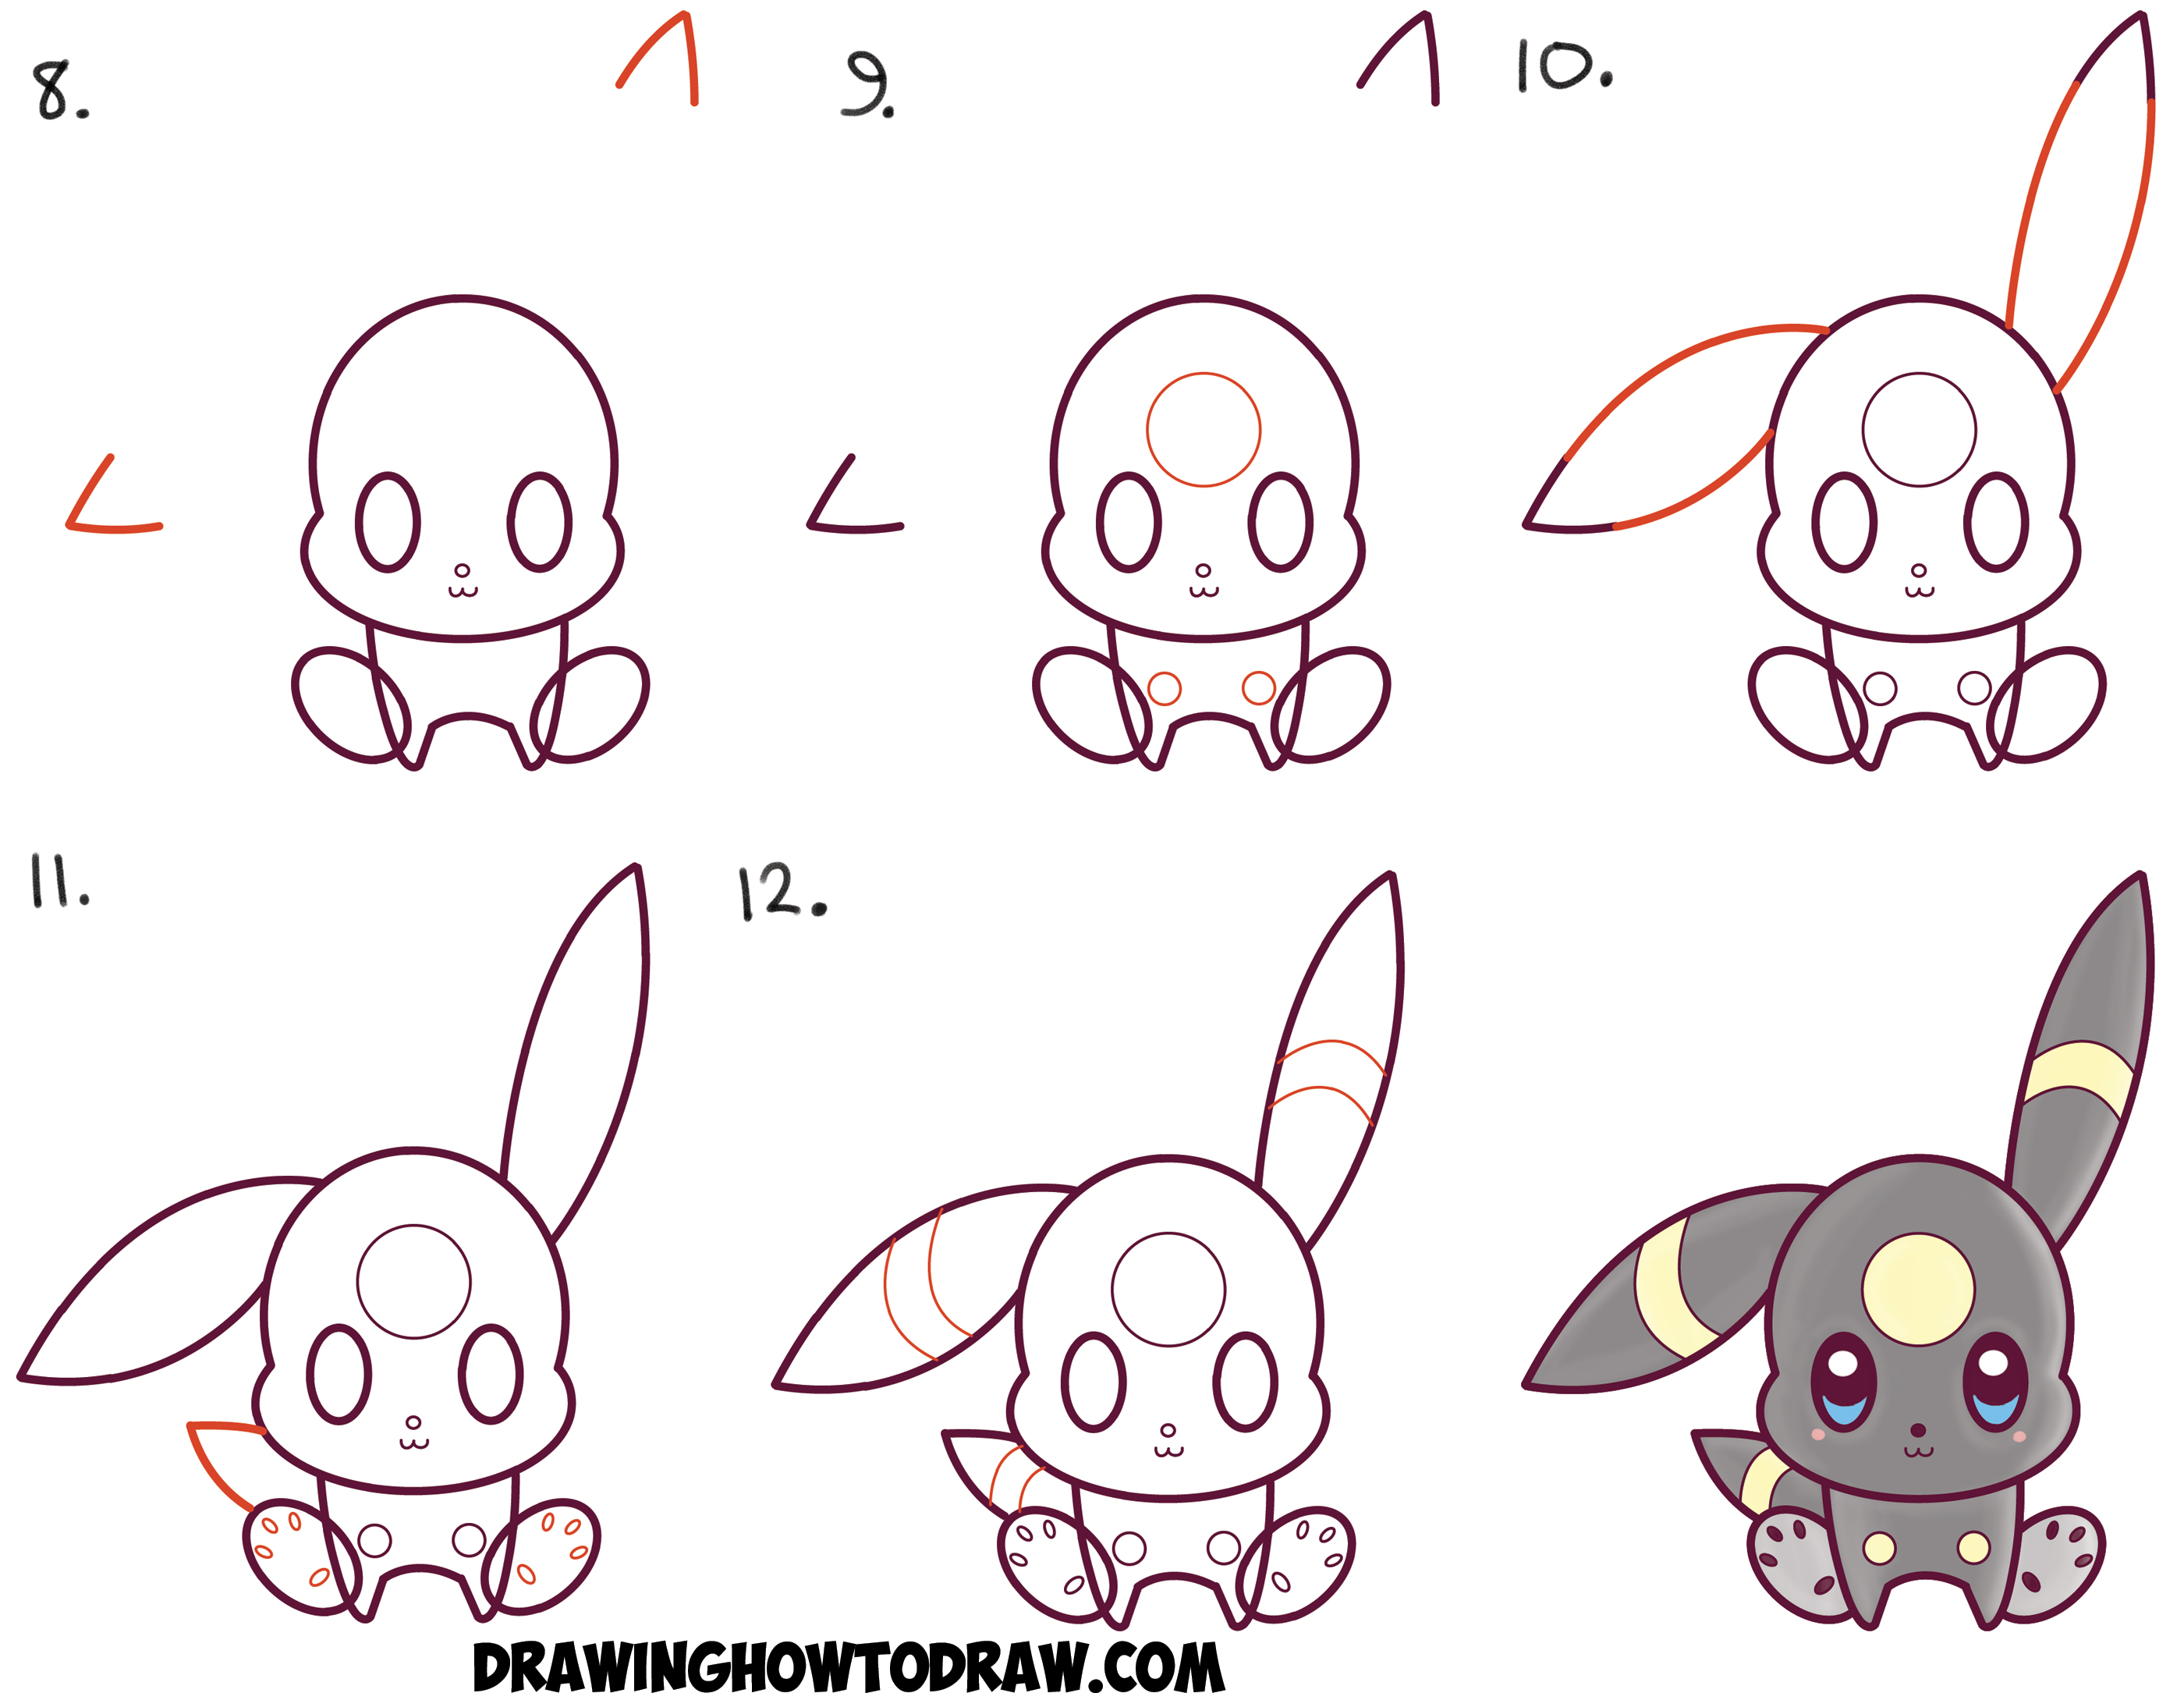 How To Draw Cute Kawaii Chibi Umbreon From Pokemon Easy